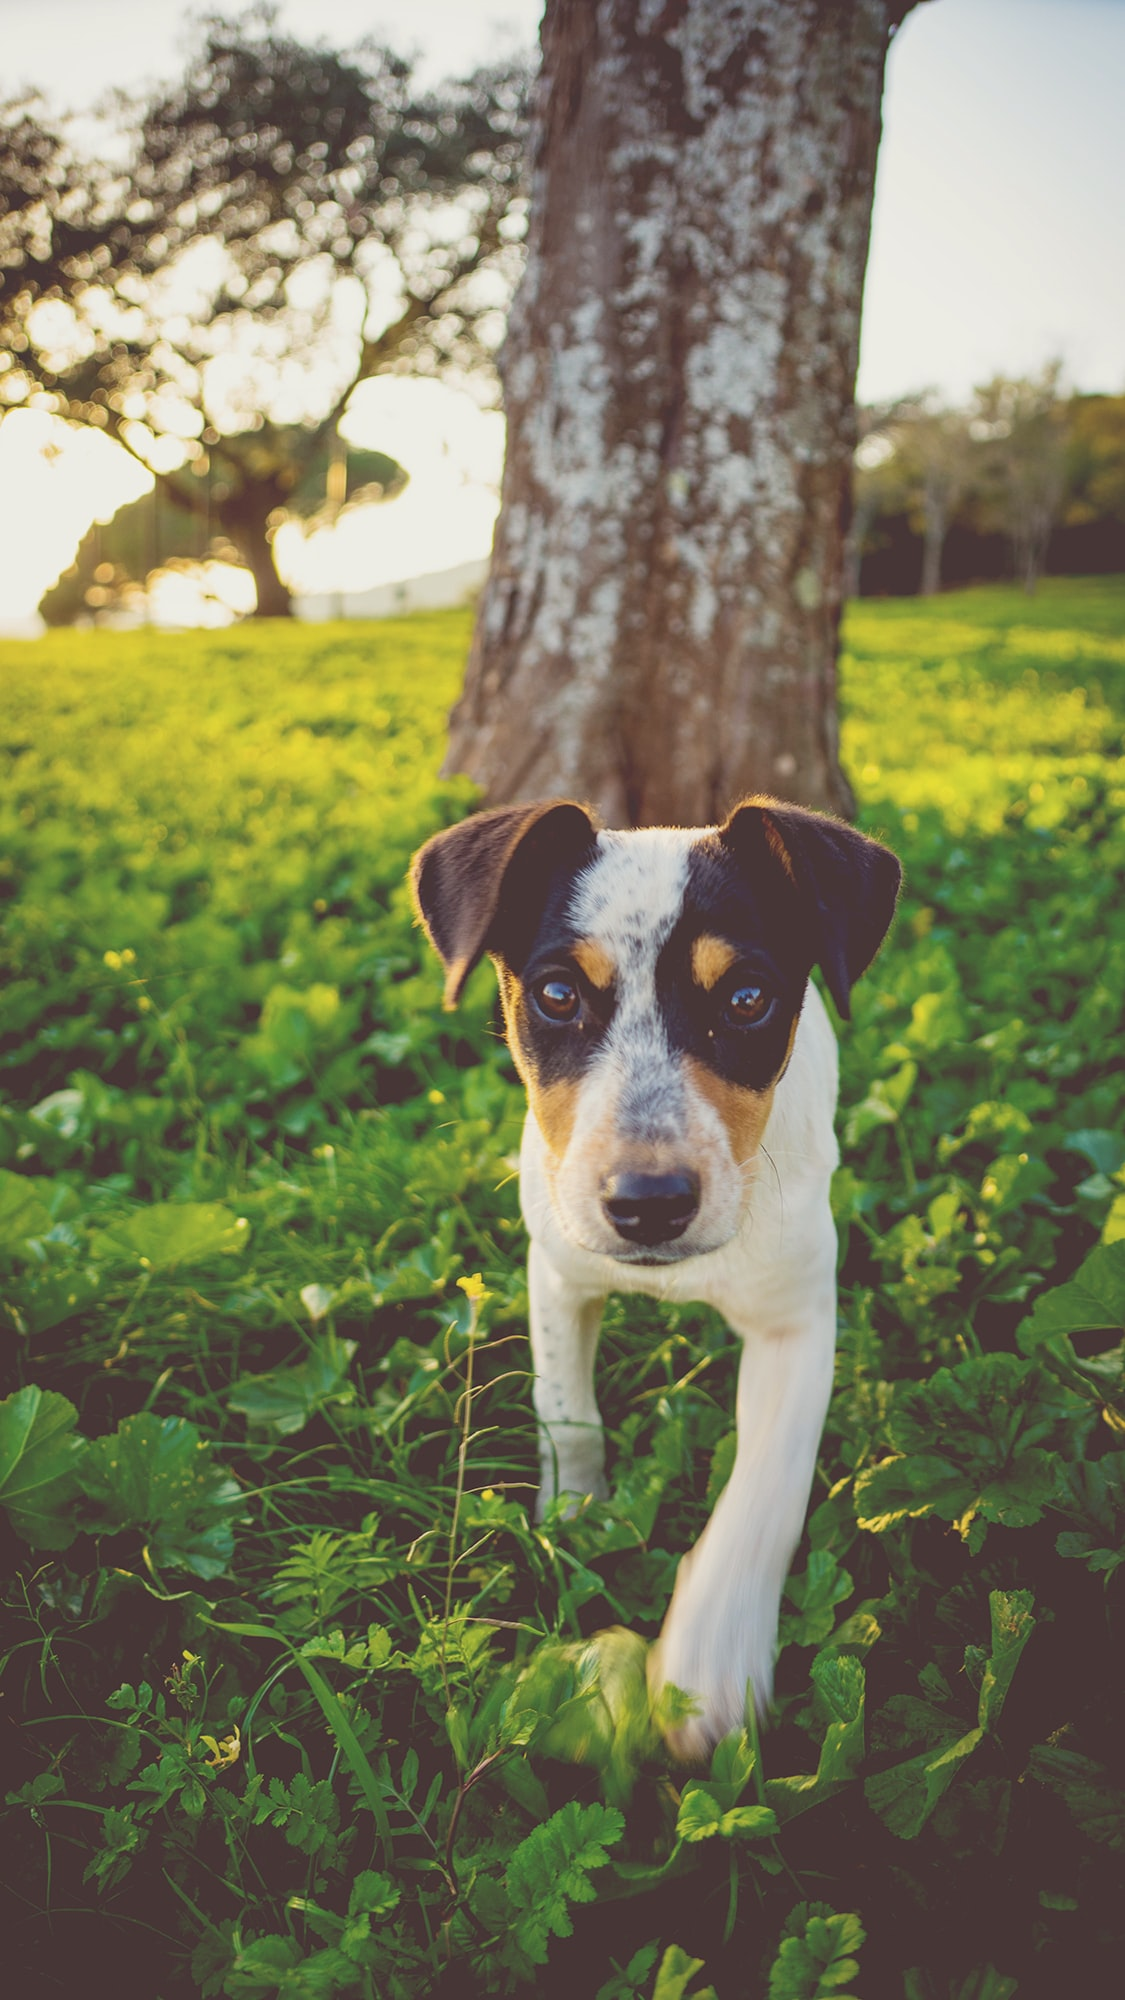 A foxhound puppy on green grass under a tree on a sunny morning in Huelva